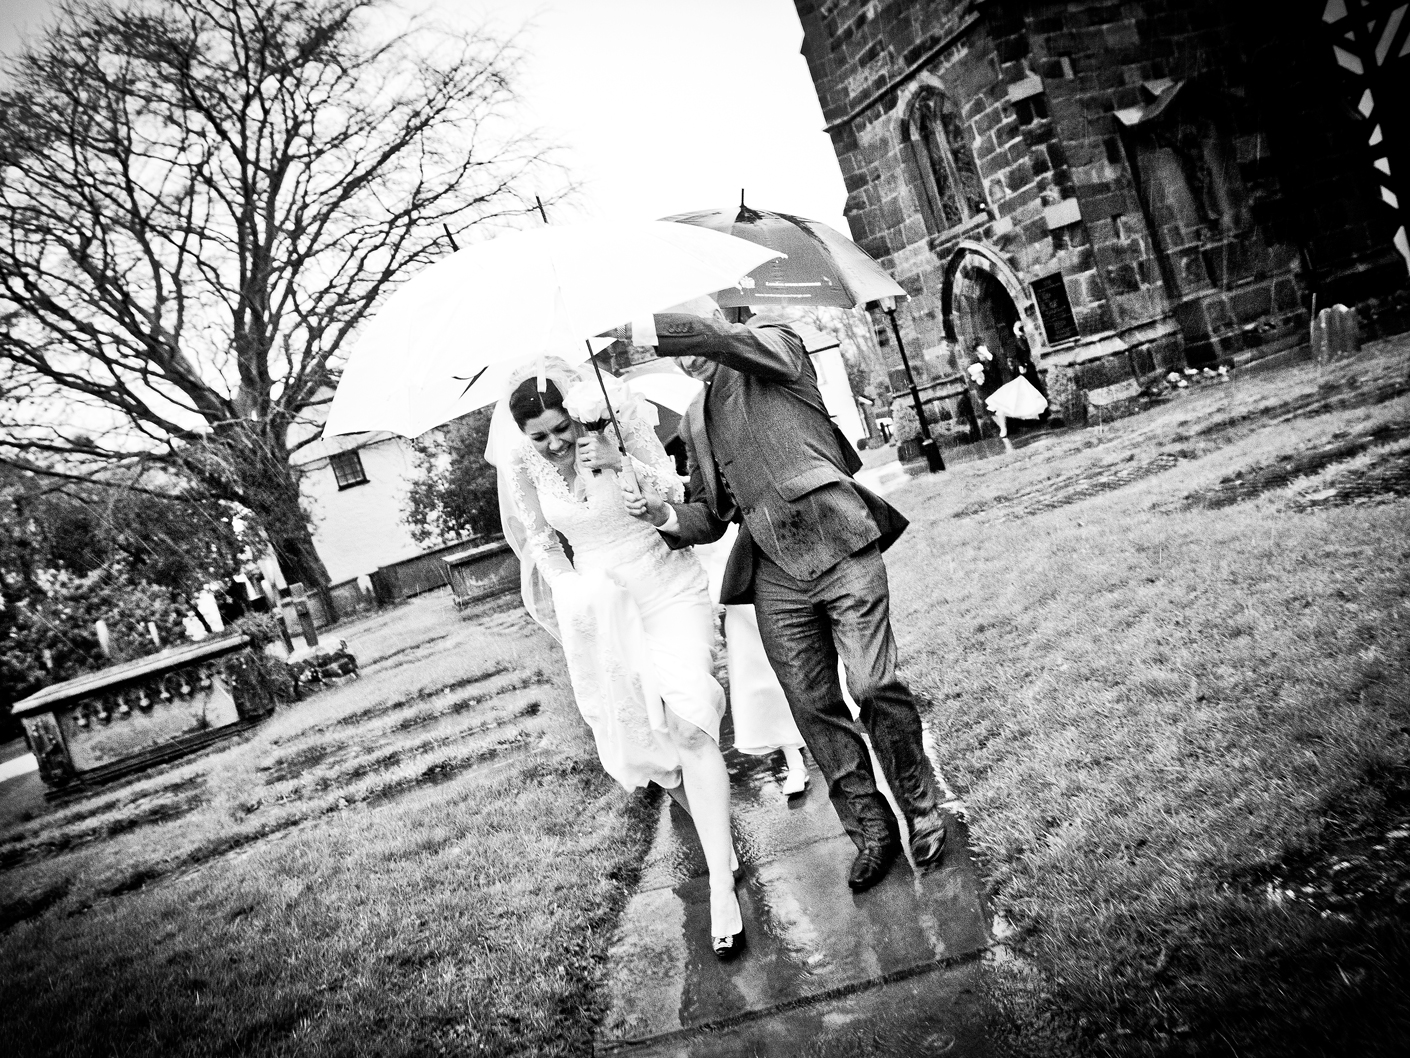 wedding-photographyat-the-wedding-ceremony-in-knutsford-cheshire-